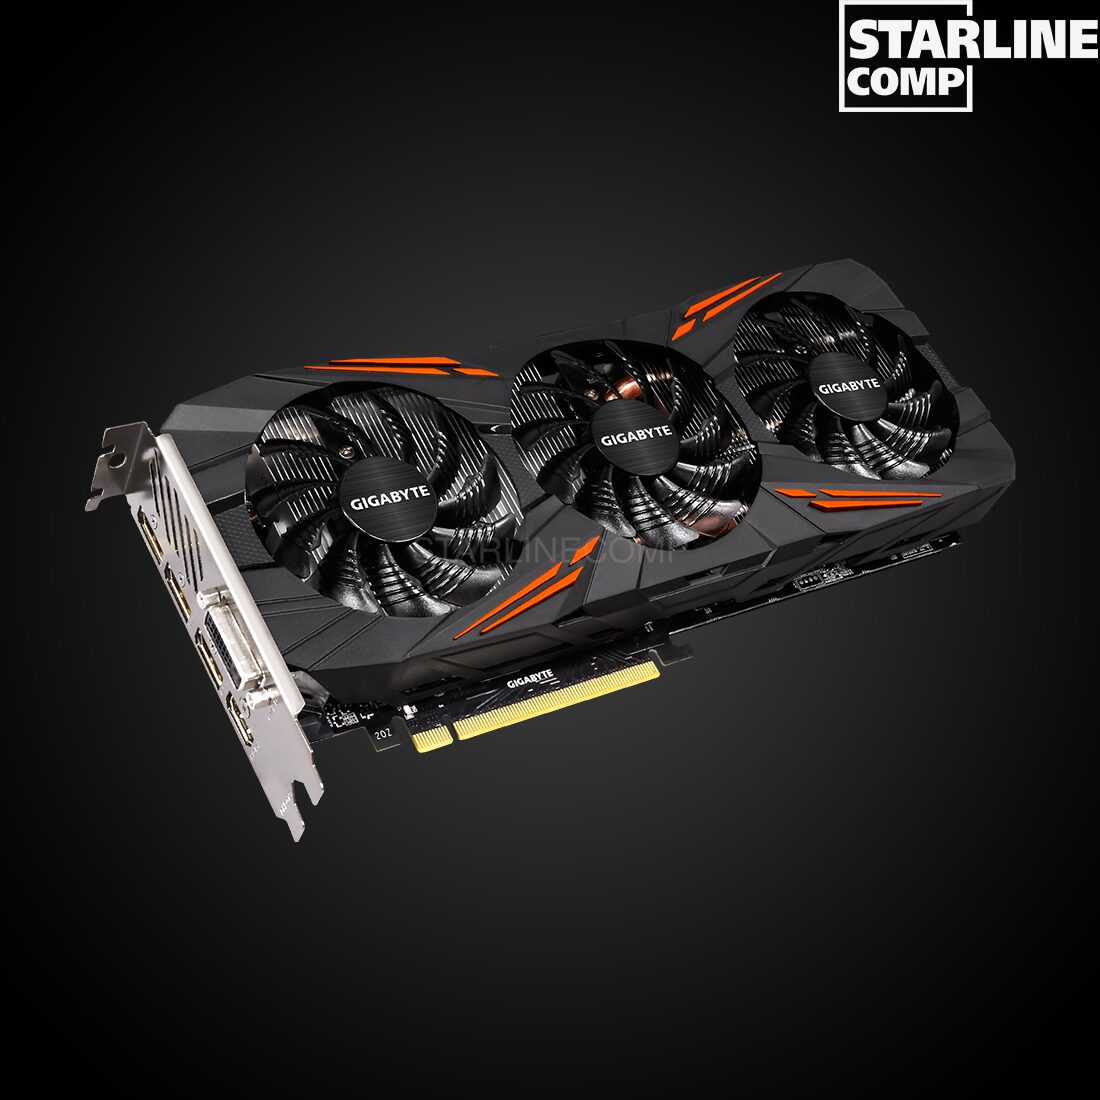 GIGABYTE G1 GAMING GEFORCE GTX 1070 8GB